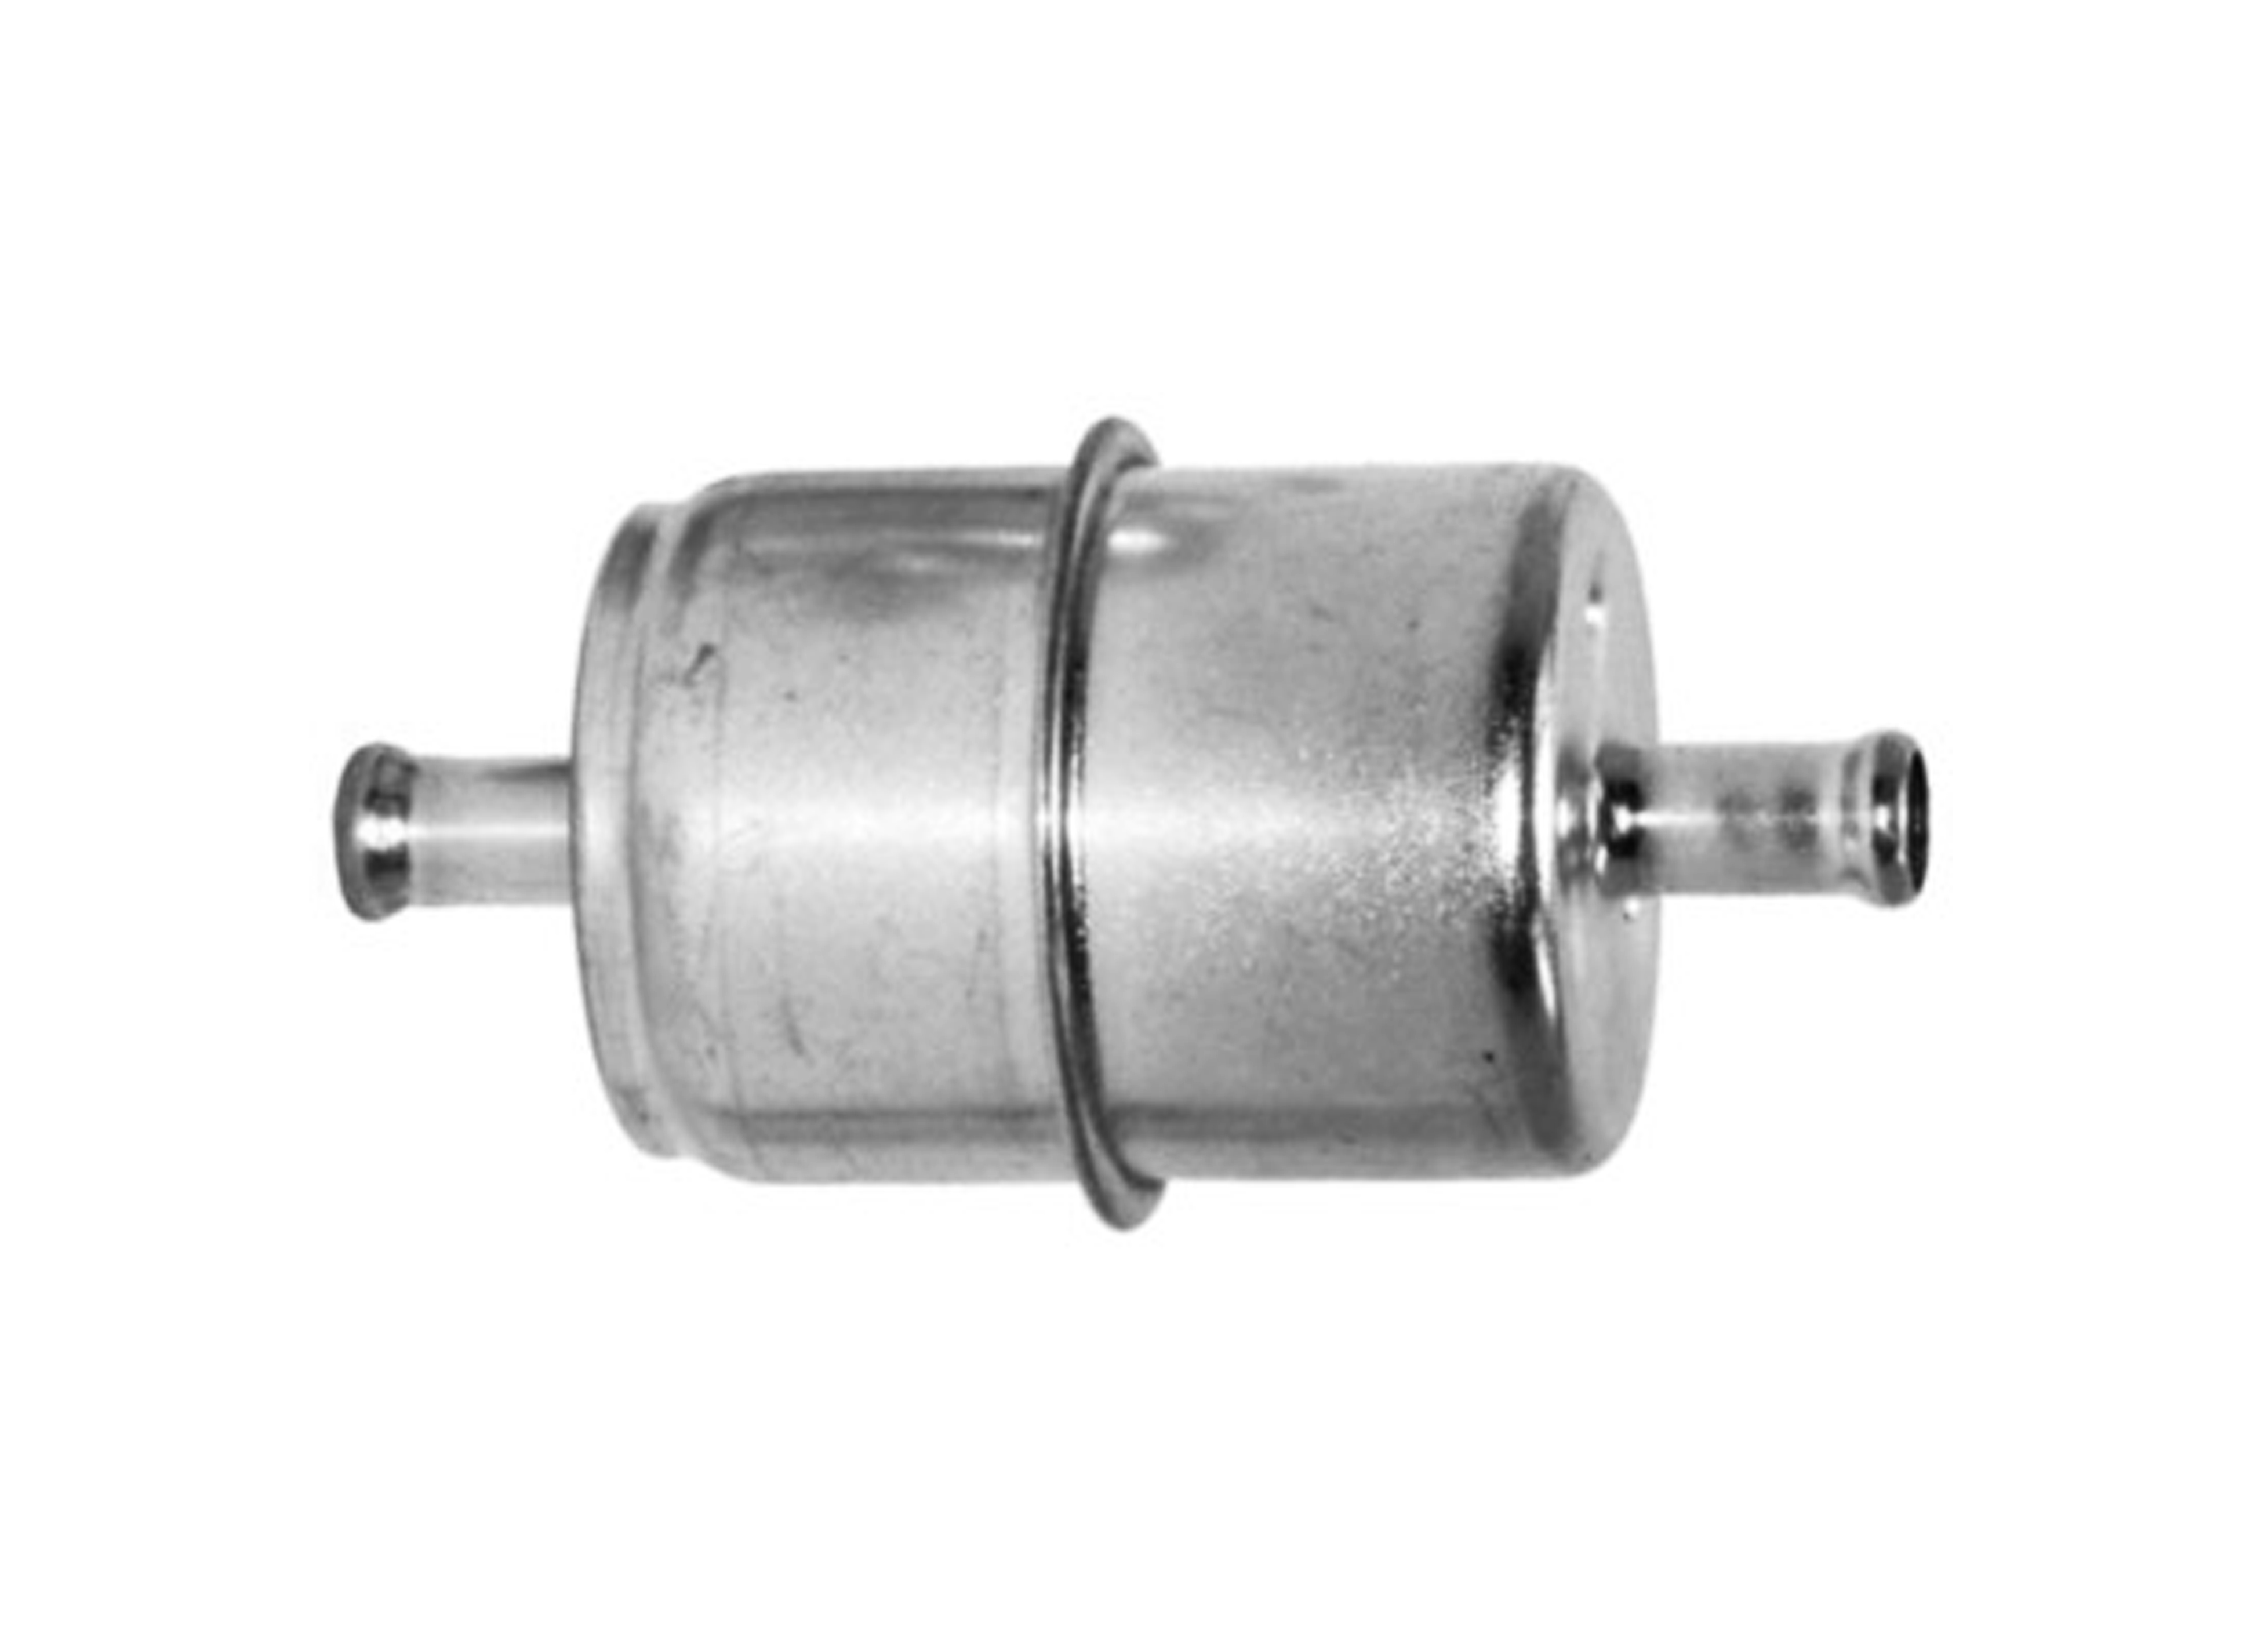 [EQHS_1162]  NAPA In-Line Fuel Filter (Auxiliary Replacement) - Transfer Flow, Inc. -  Aftermarket Fuel Tank Systems | Install Inline Fuel Filter |  | Transfer Flow